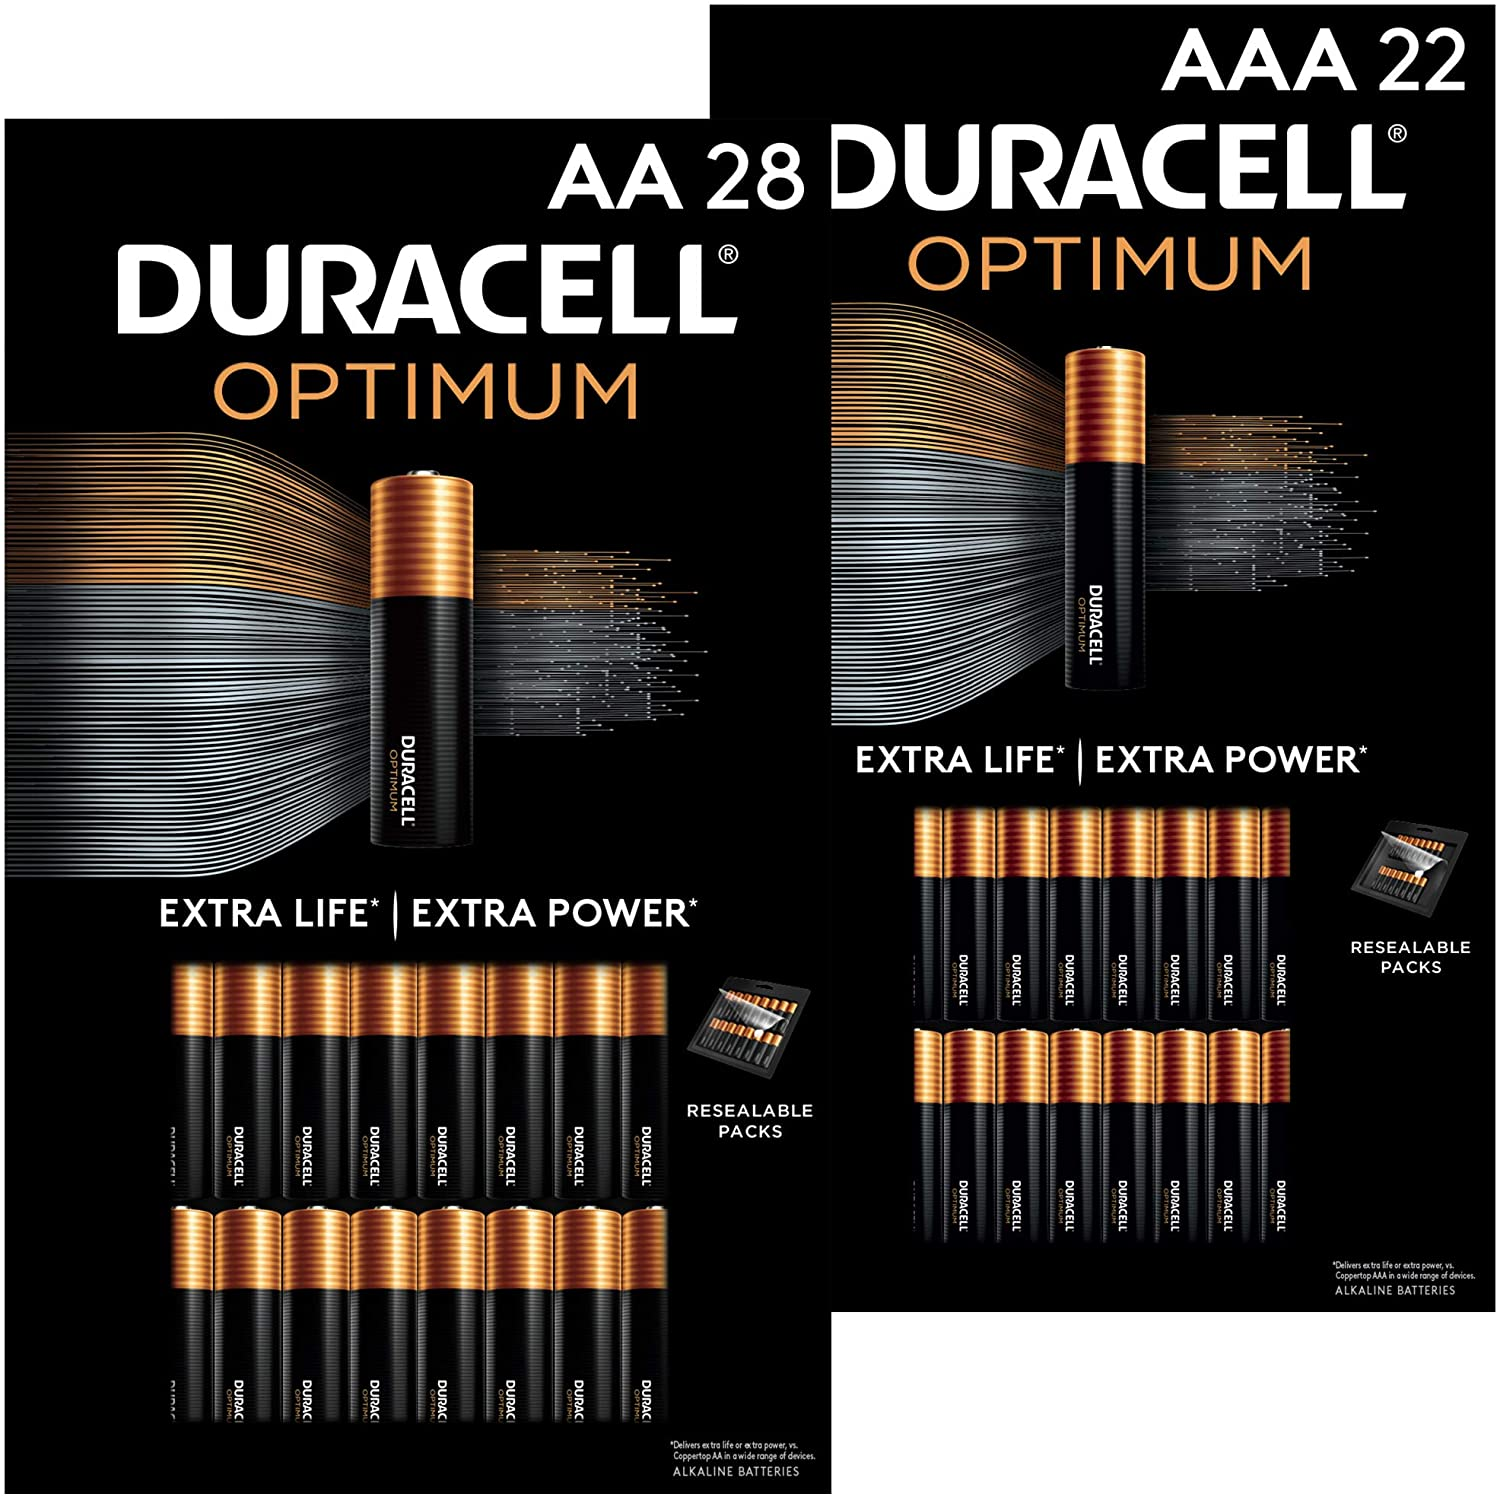 Duracell Optimum AA + AAA Batteries Combo Pack | 28 Count + 22 Count | Lasting Double A & Triple A Battery | Alkaline Battery Ideal for Household and Office | 50 Count Total